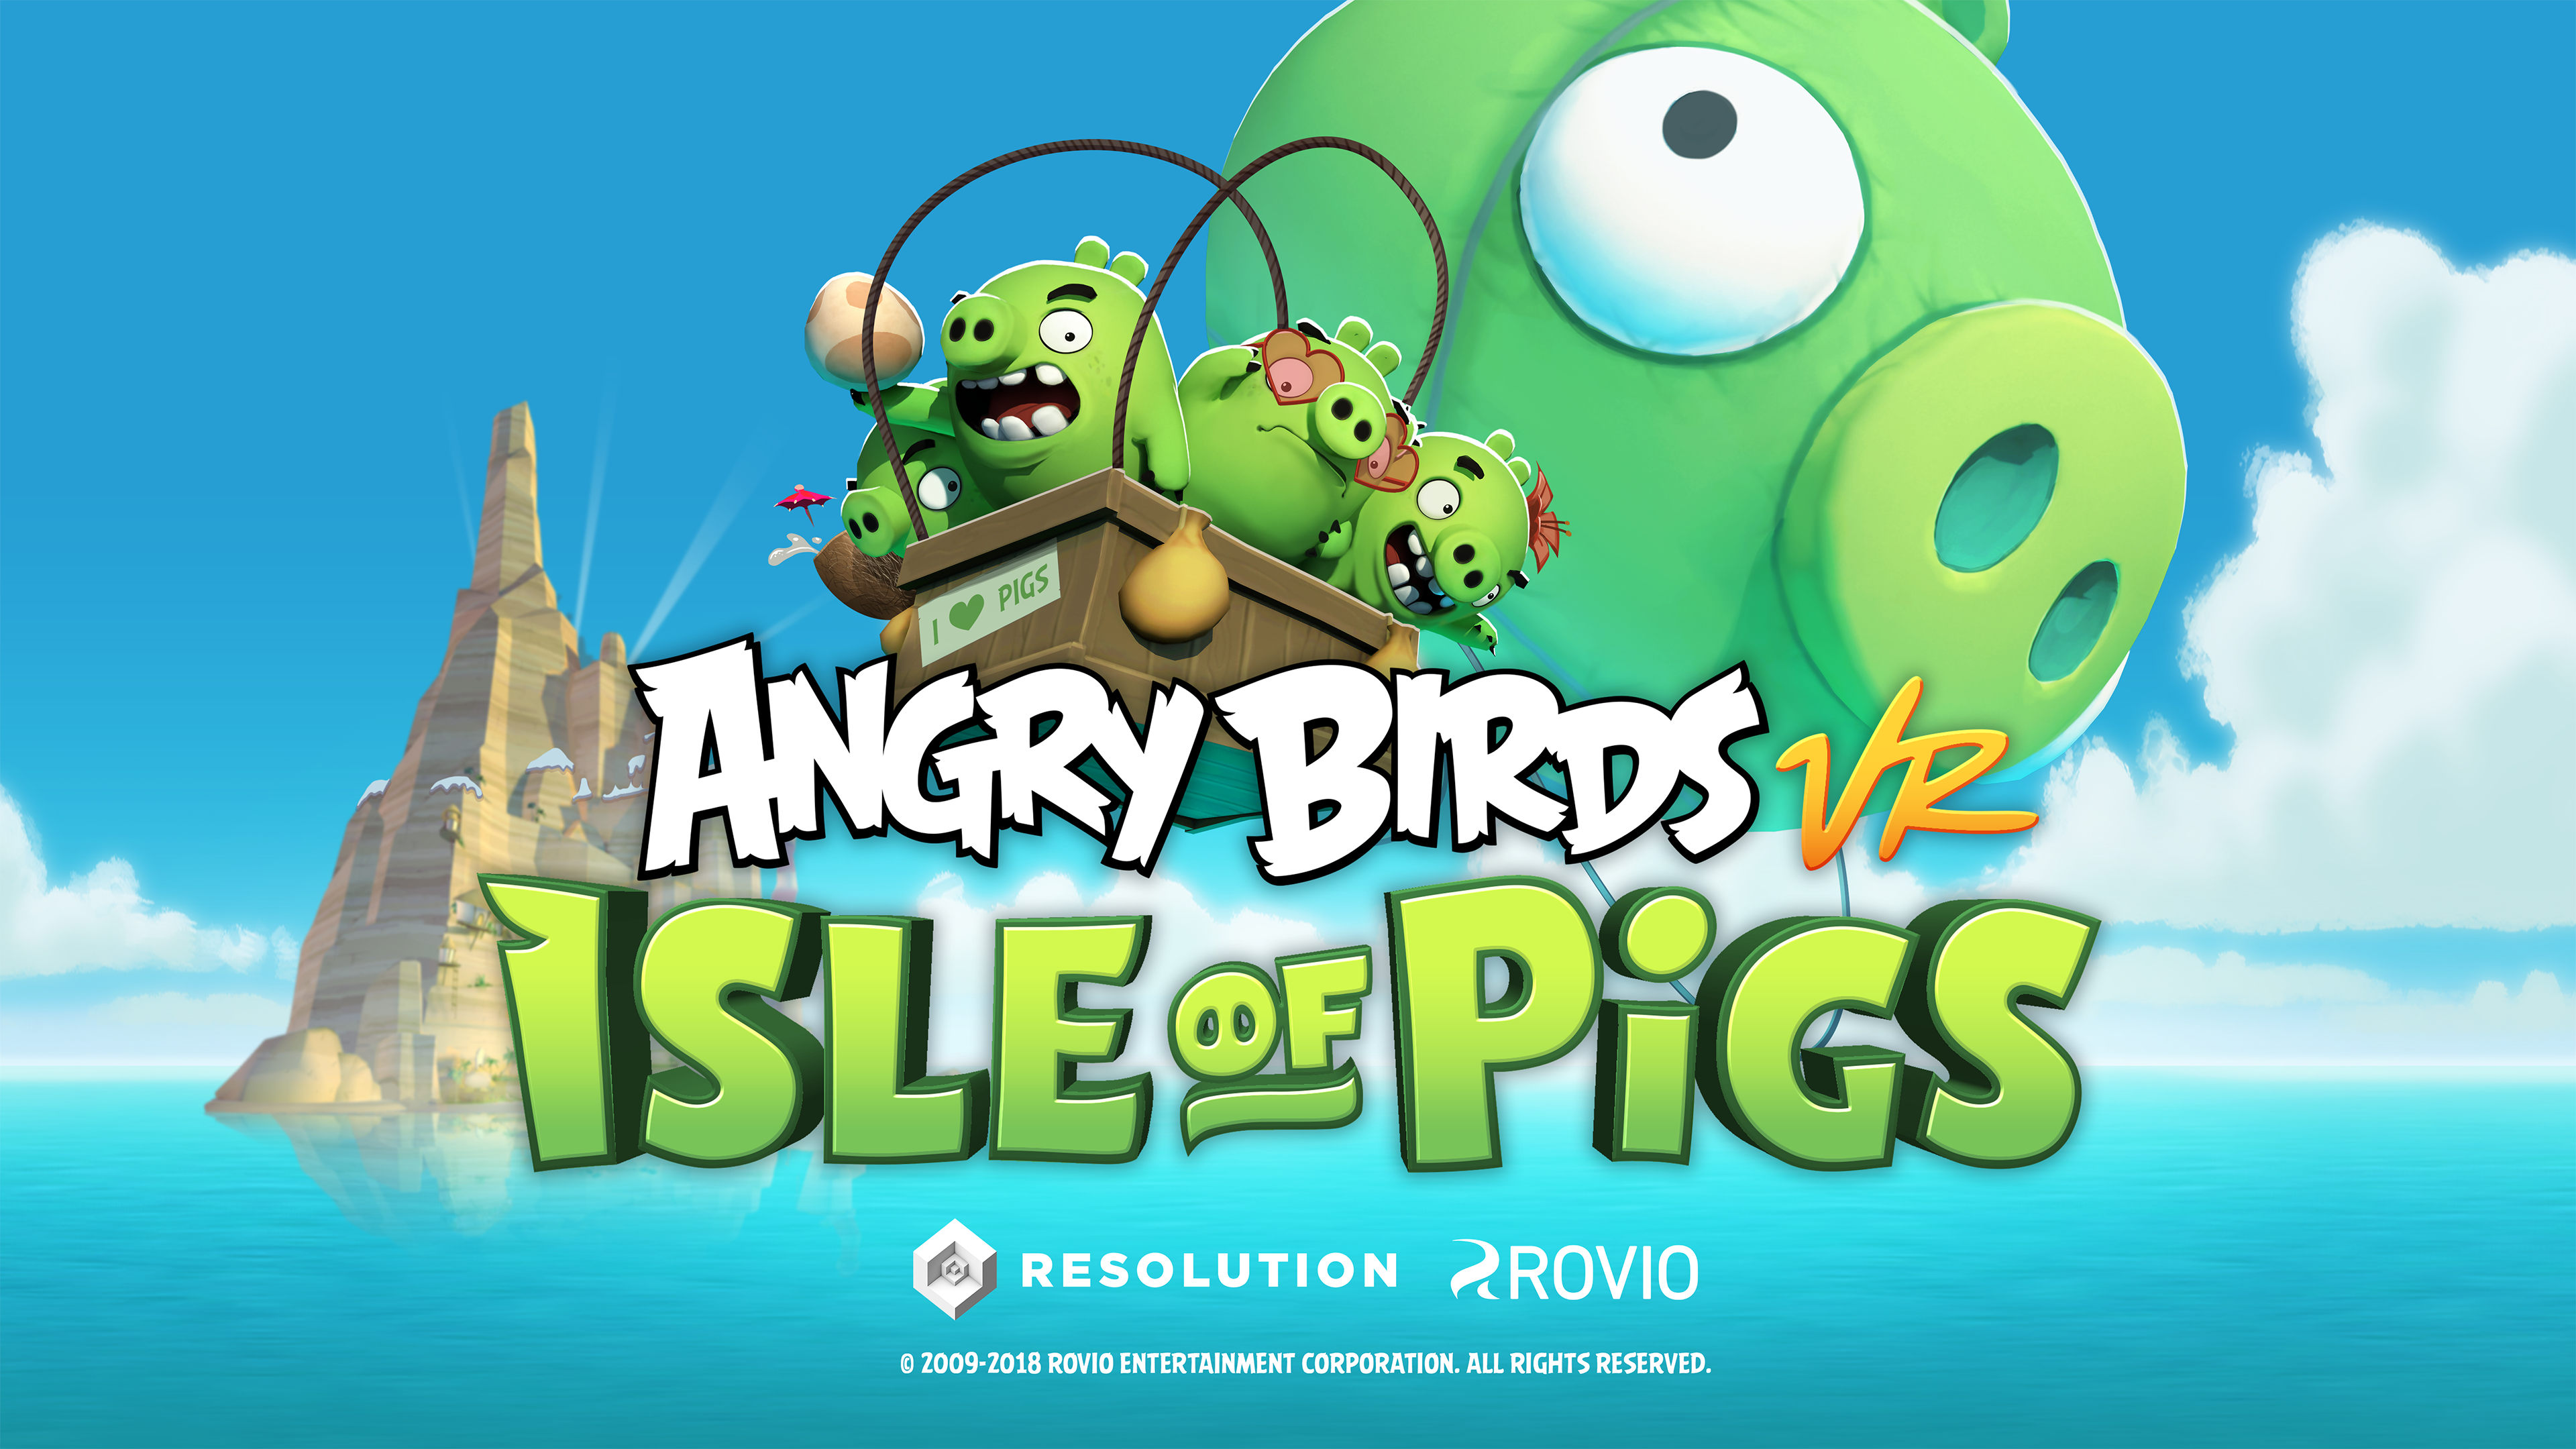 Angry Birds VR _ Isle of Pigs Hero Image